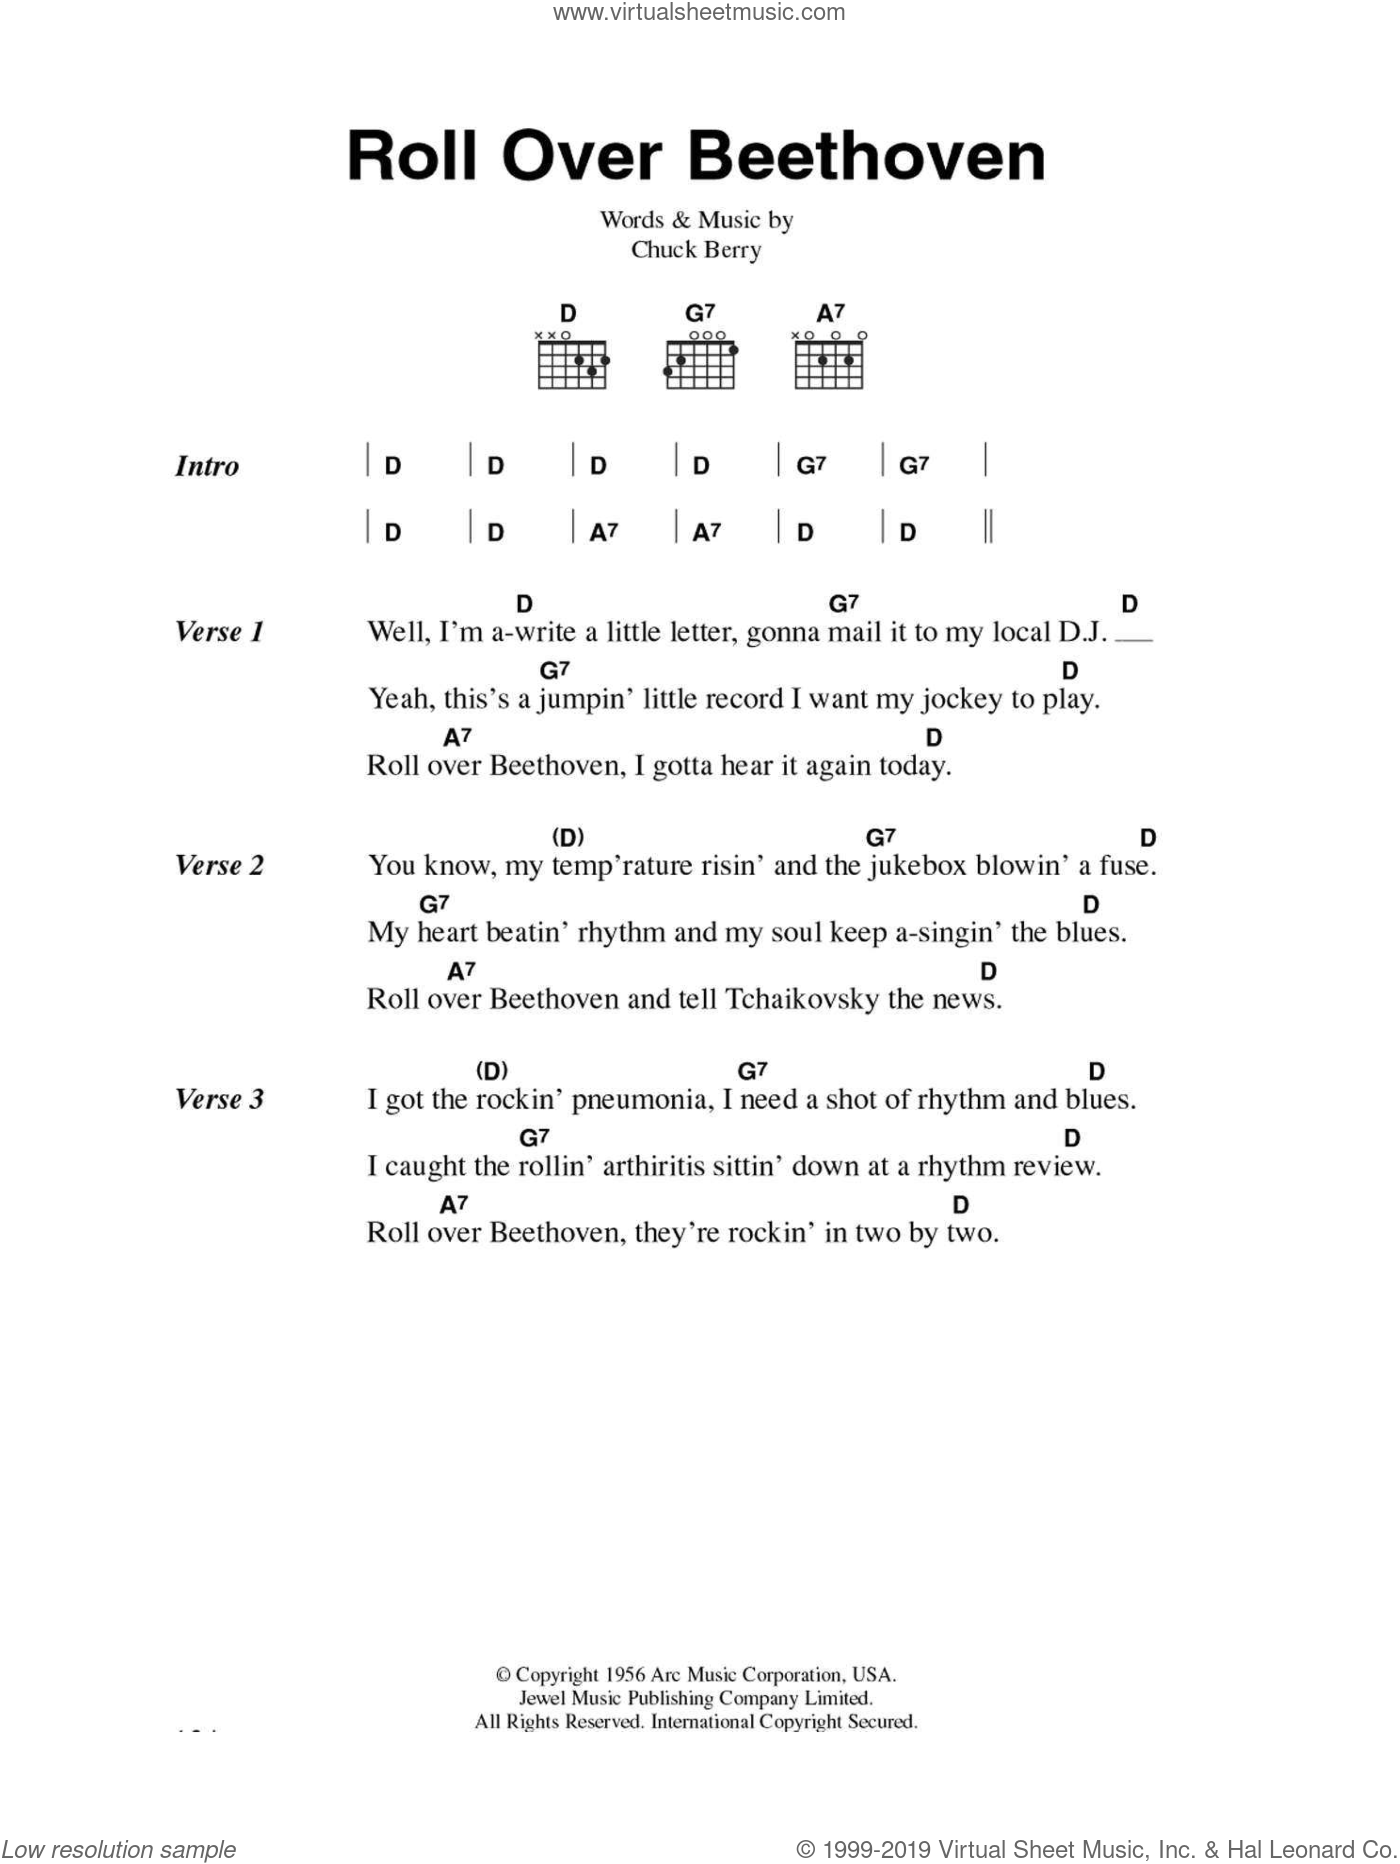 Roll Over Beethoven sheet music for guitar (chords) by Chuck Berry, intermediate. Score Image Preview.